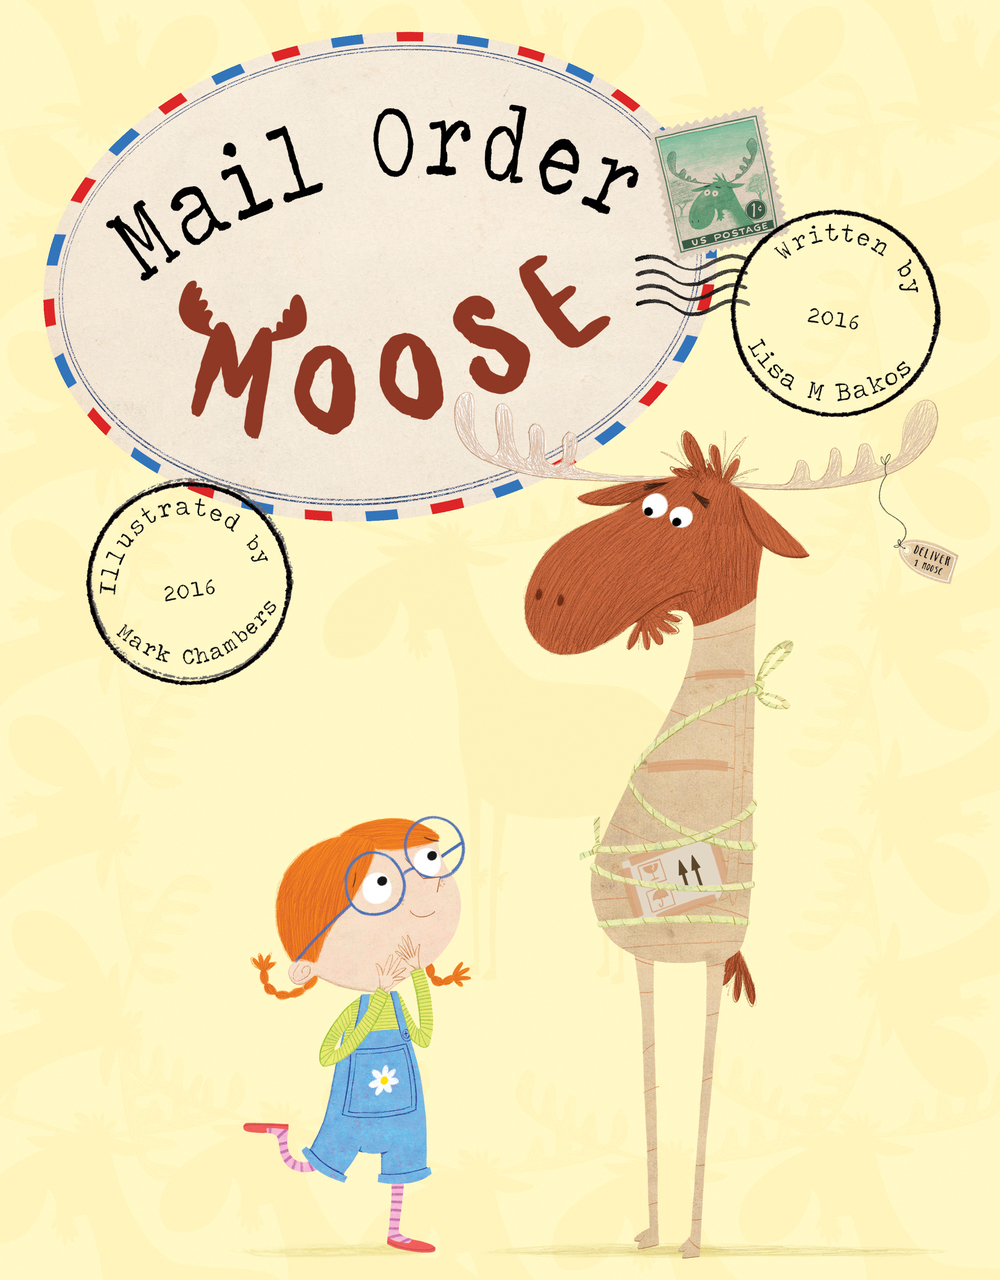 Going to art with the chosen design, everyone felt the moose looked a bit unhappy at being wrapped up in a load of parcel tape (wouldn't you be too?) also Martha needed to look happier and more animated to express her joy at receiving her first moose.